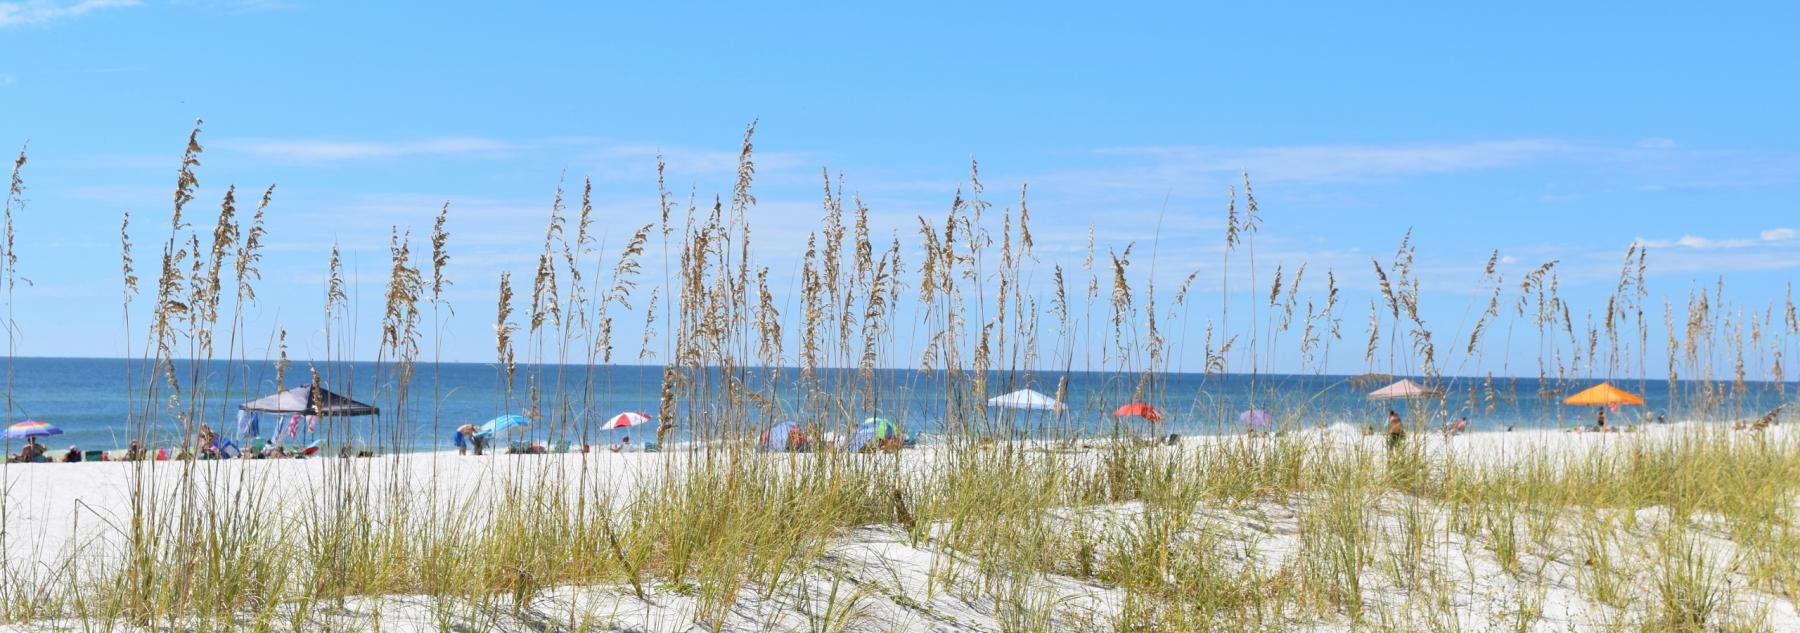 Beach and Sea Oats at Gulf Shores